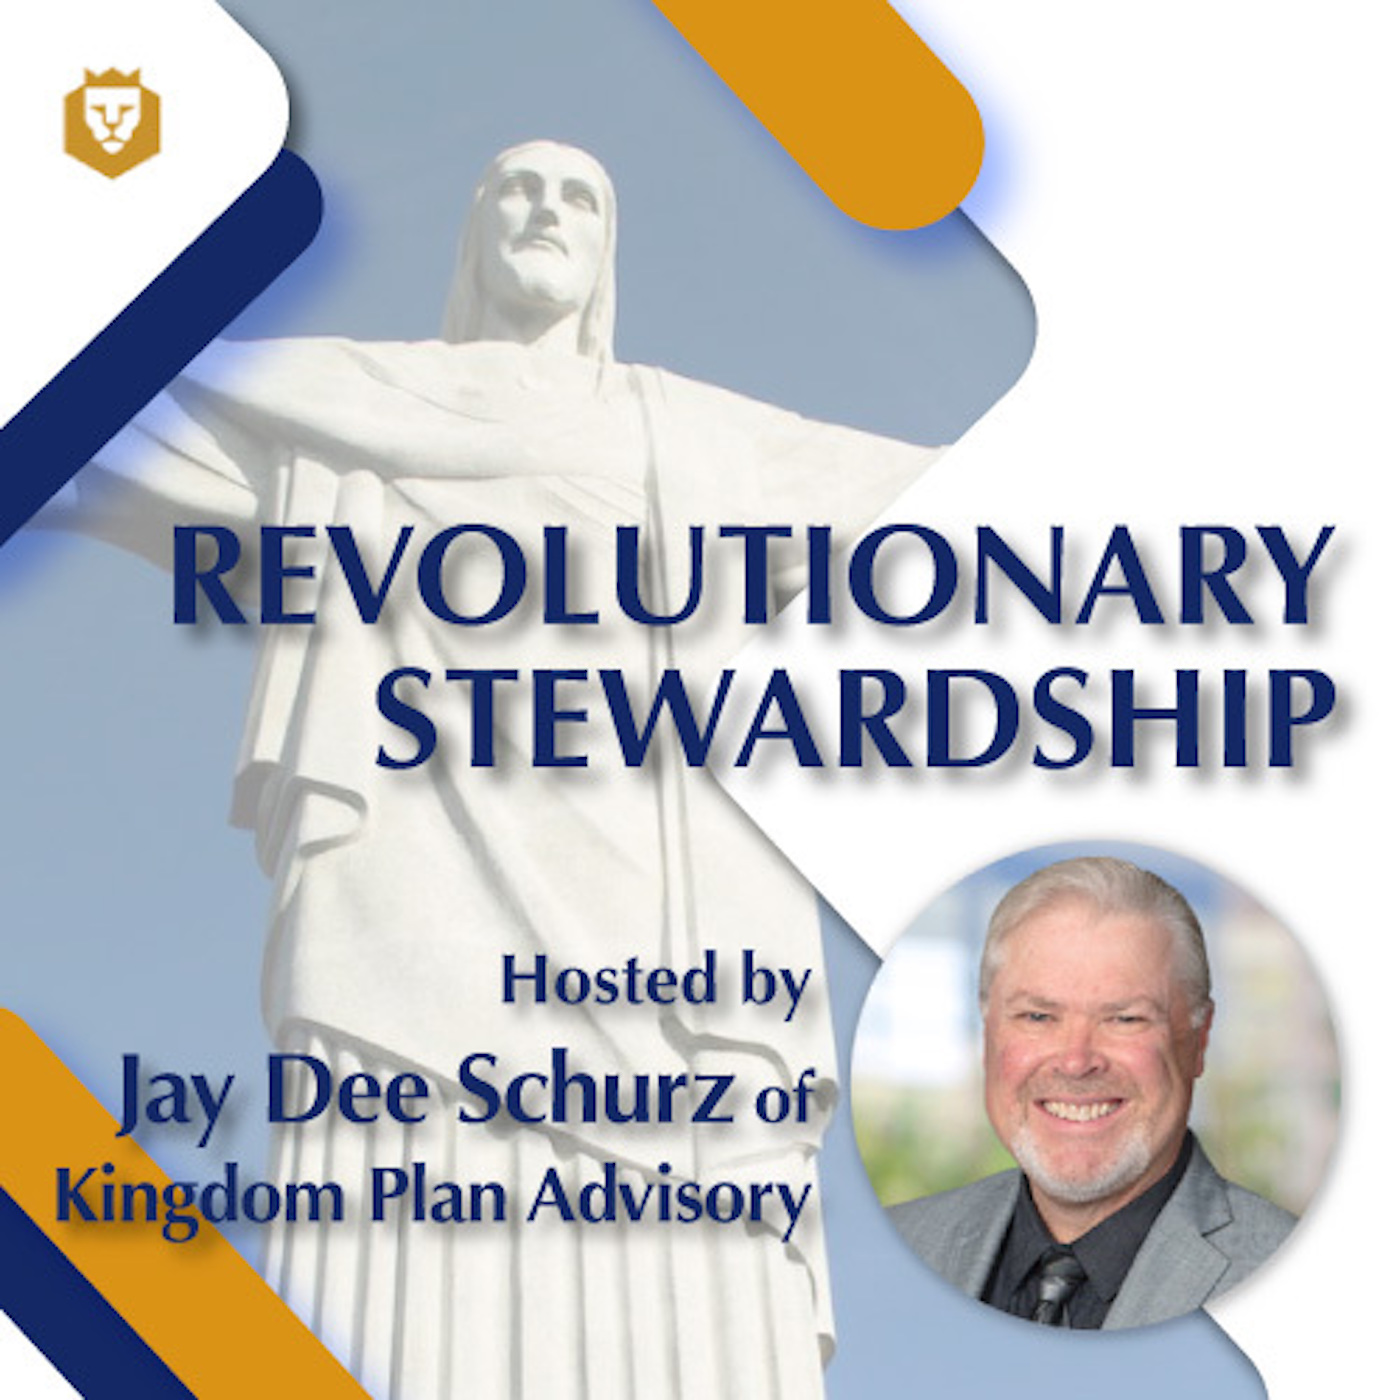 The Revolutionary Stewardship Podcast is a program centered on discussing modern day financial concerns and applying Biblical wisdom to guide us.